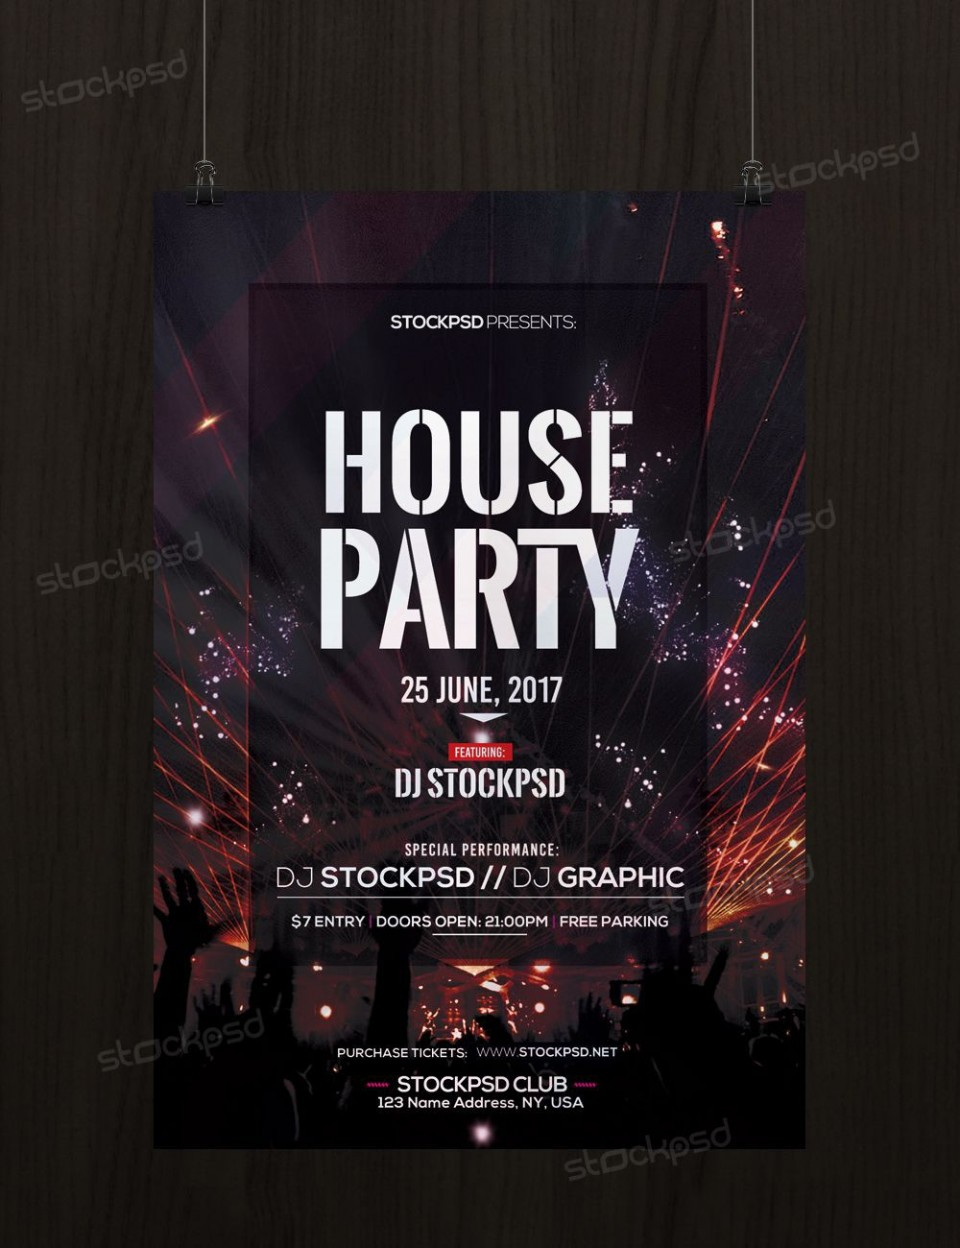 001 Fearsome Free Party Flyer Template For Photoshop Highest Quality  Pool Psd Download960